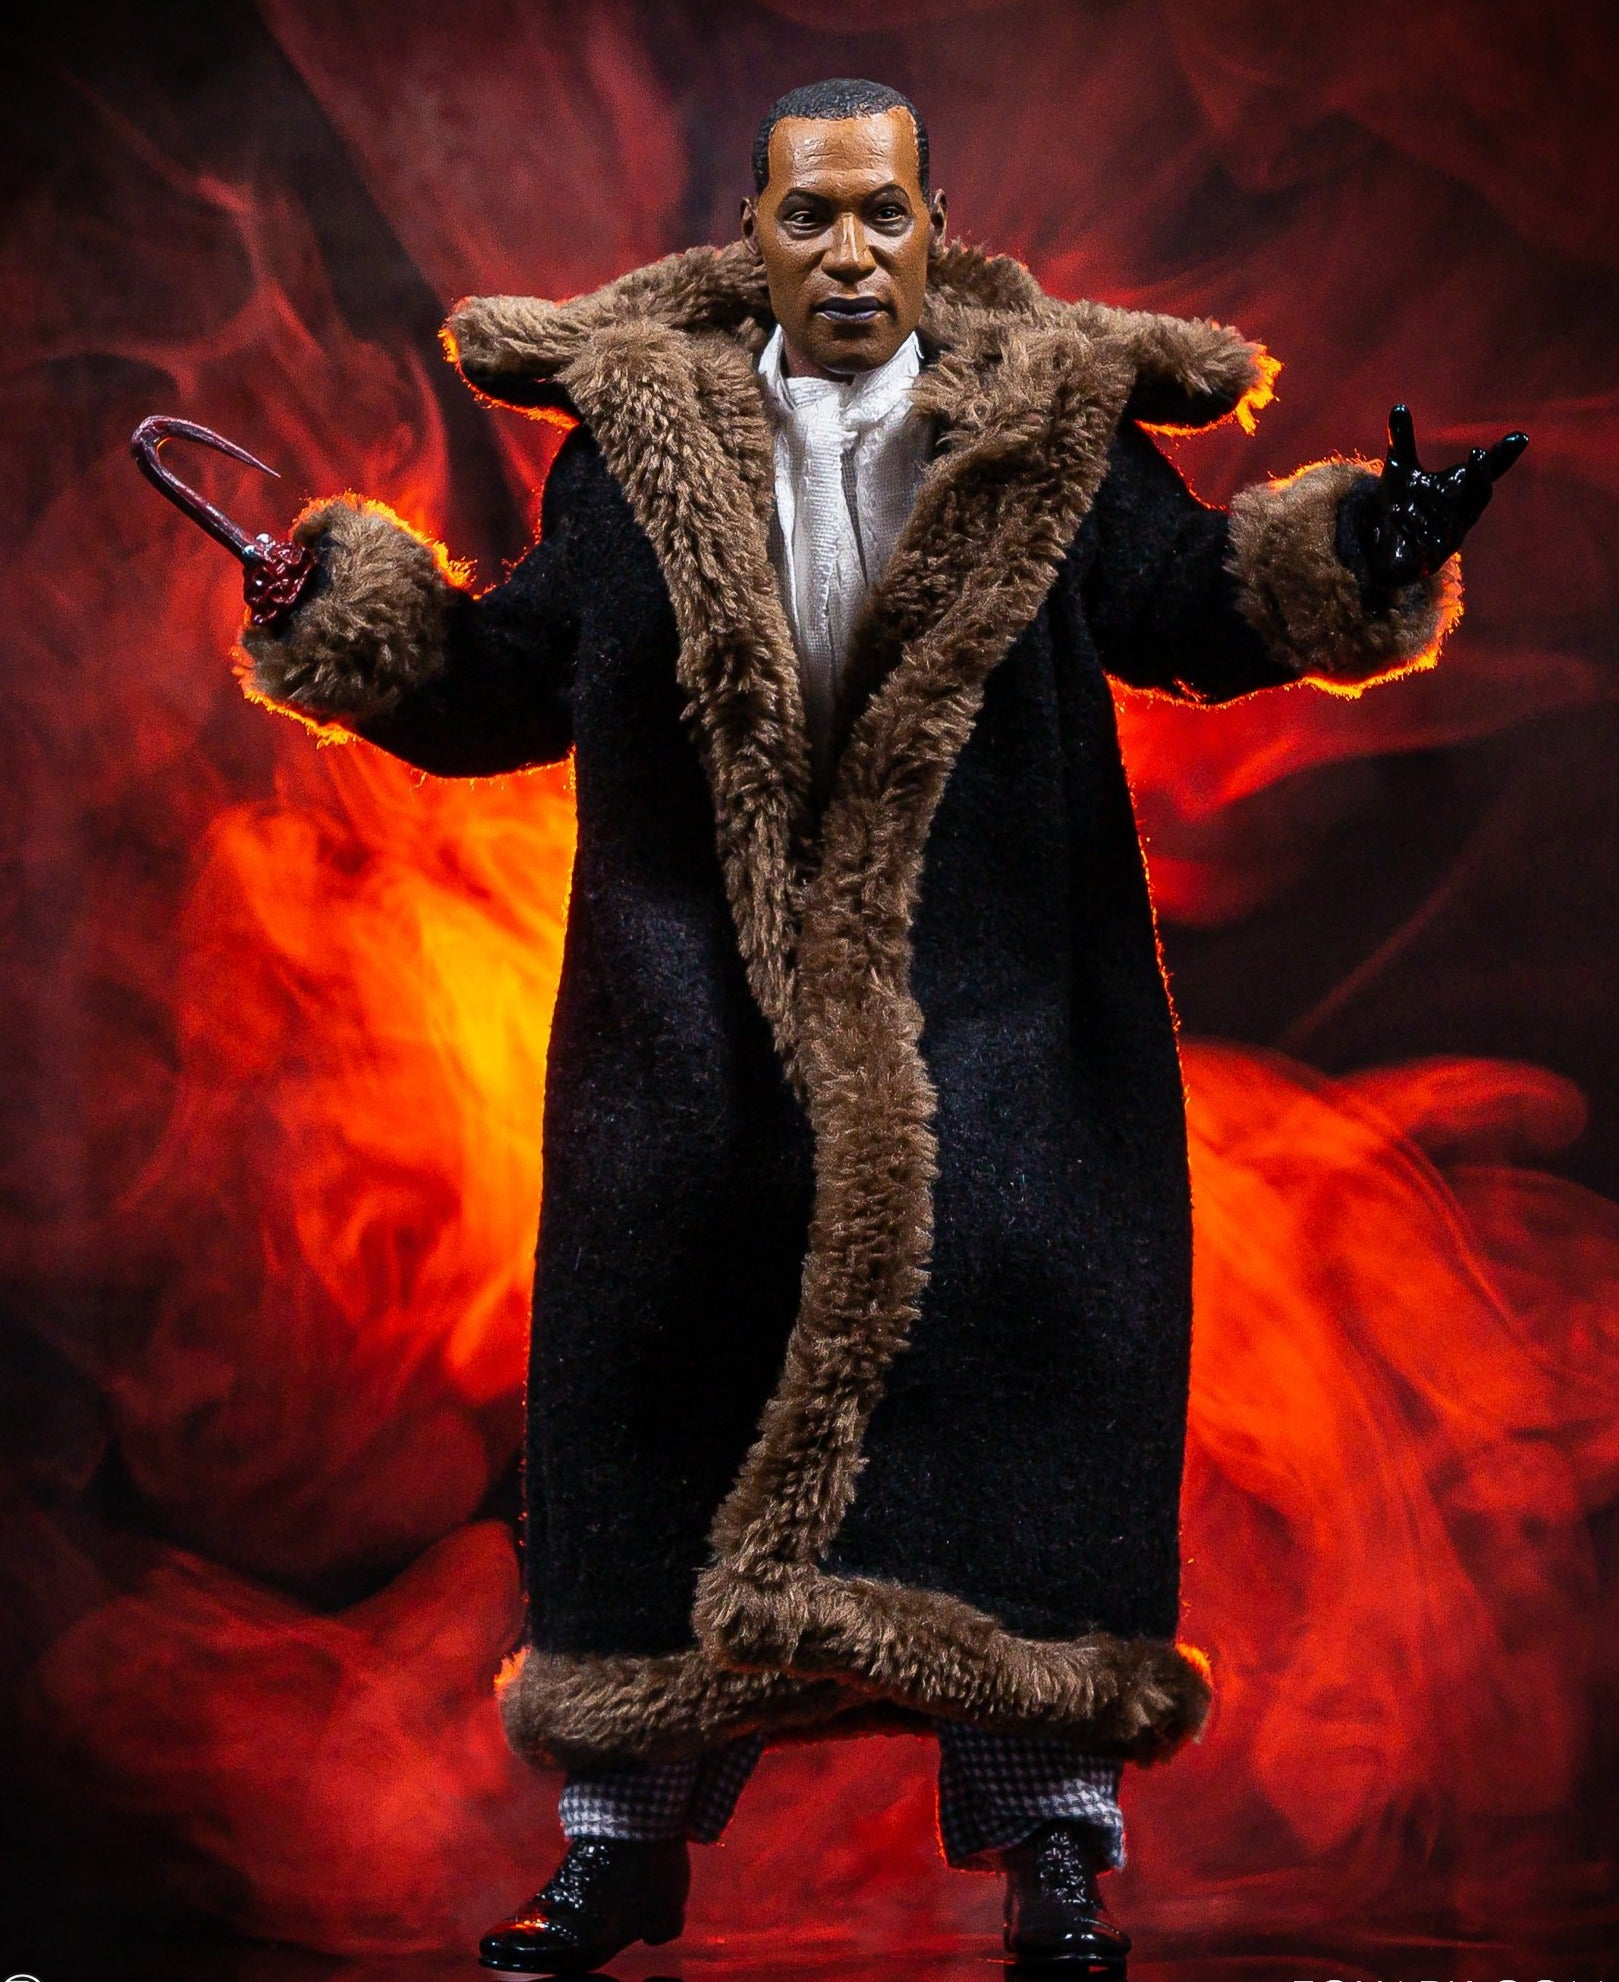 "NECA - Candyman - 8"" Clothed Action Figure - Candyman - Collectors Row Inc."